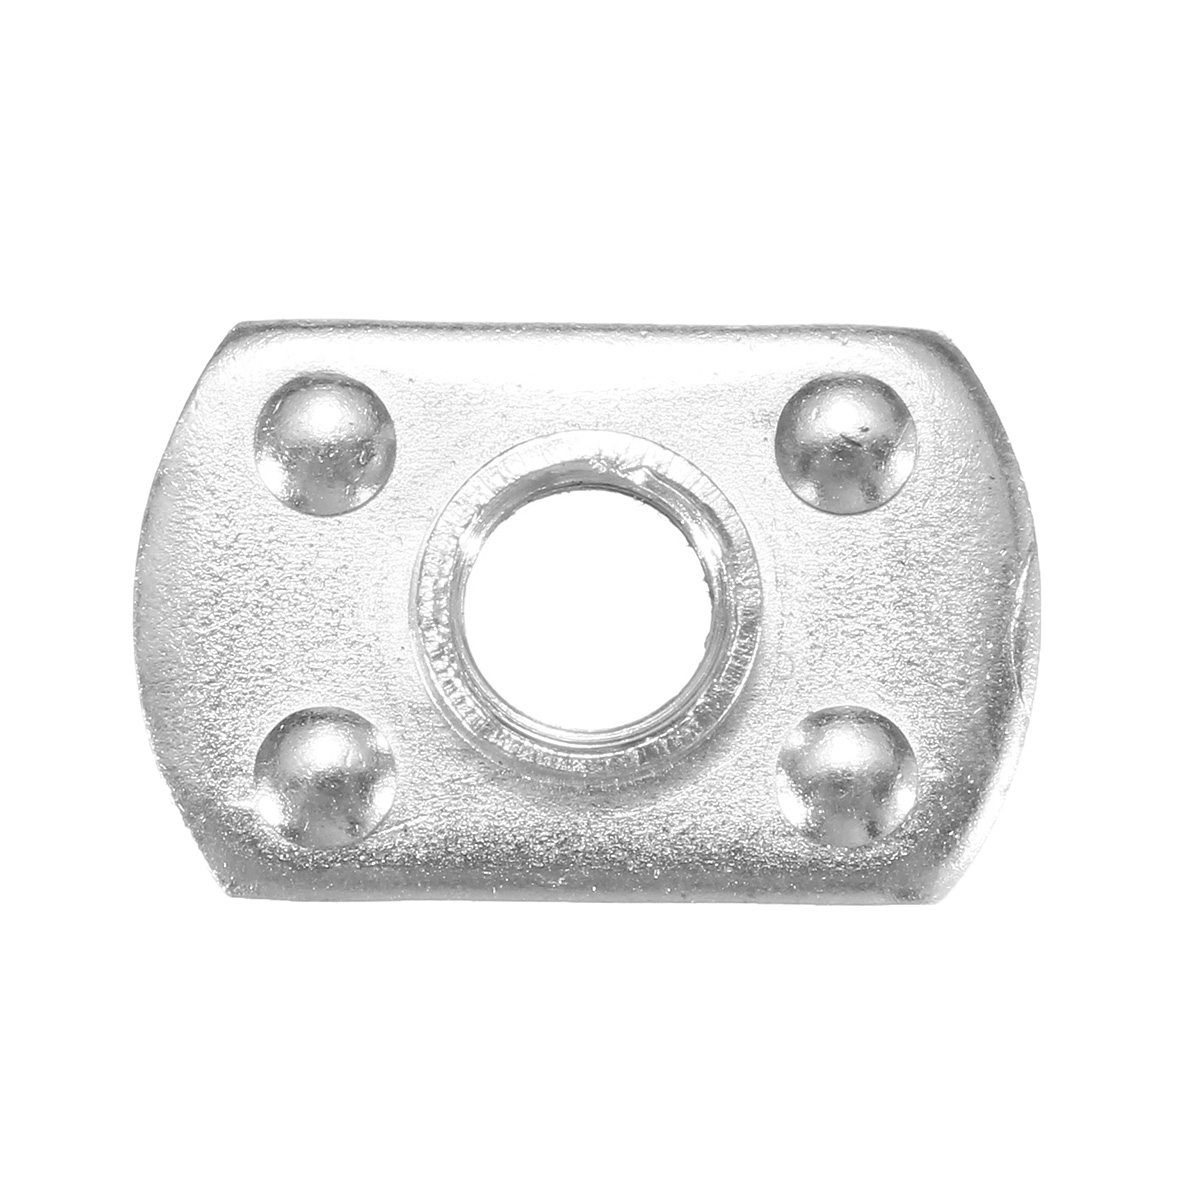 small resolution of 24x hard top fastener thumb screw nut plate washer fit for jeep wrangler yj jk in nuts bolts from automobiles motorcycles on aliexpress com alibaba